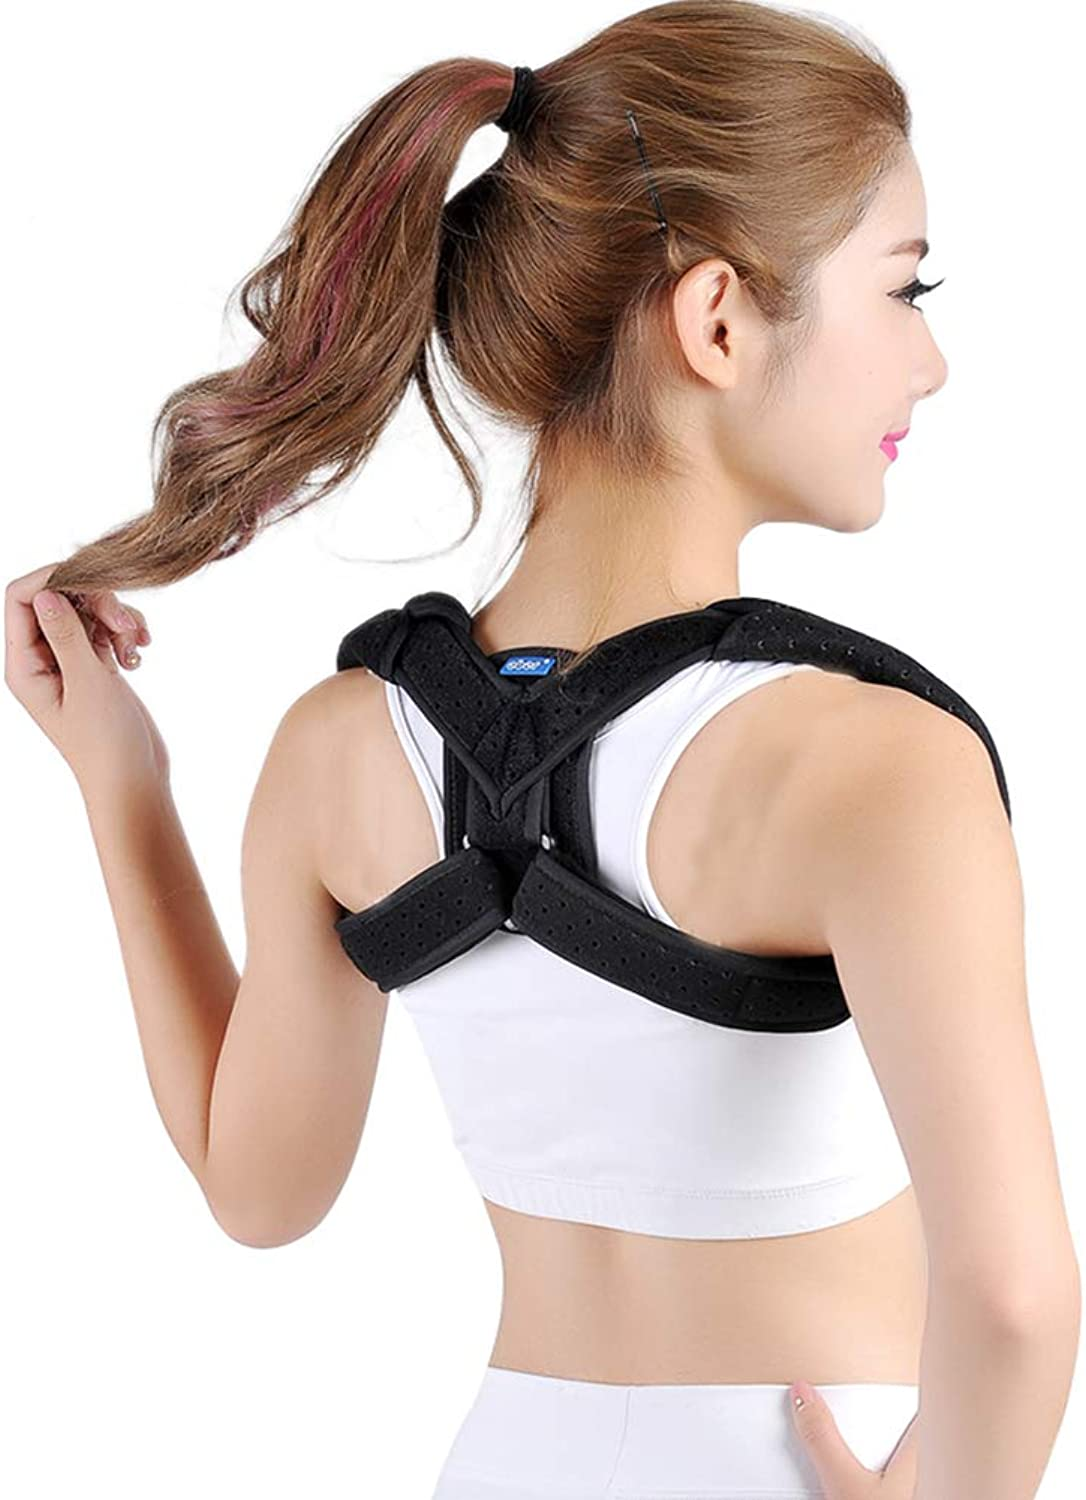 The Best Posture Support Orthosis and Orthosis for Women and Men, Figure 8 Supports The Shoulder Support, Ideal for Relieving Pain in The Back and Neck